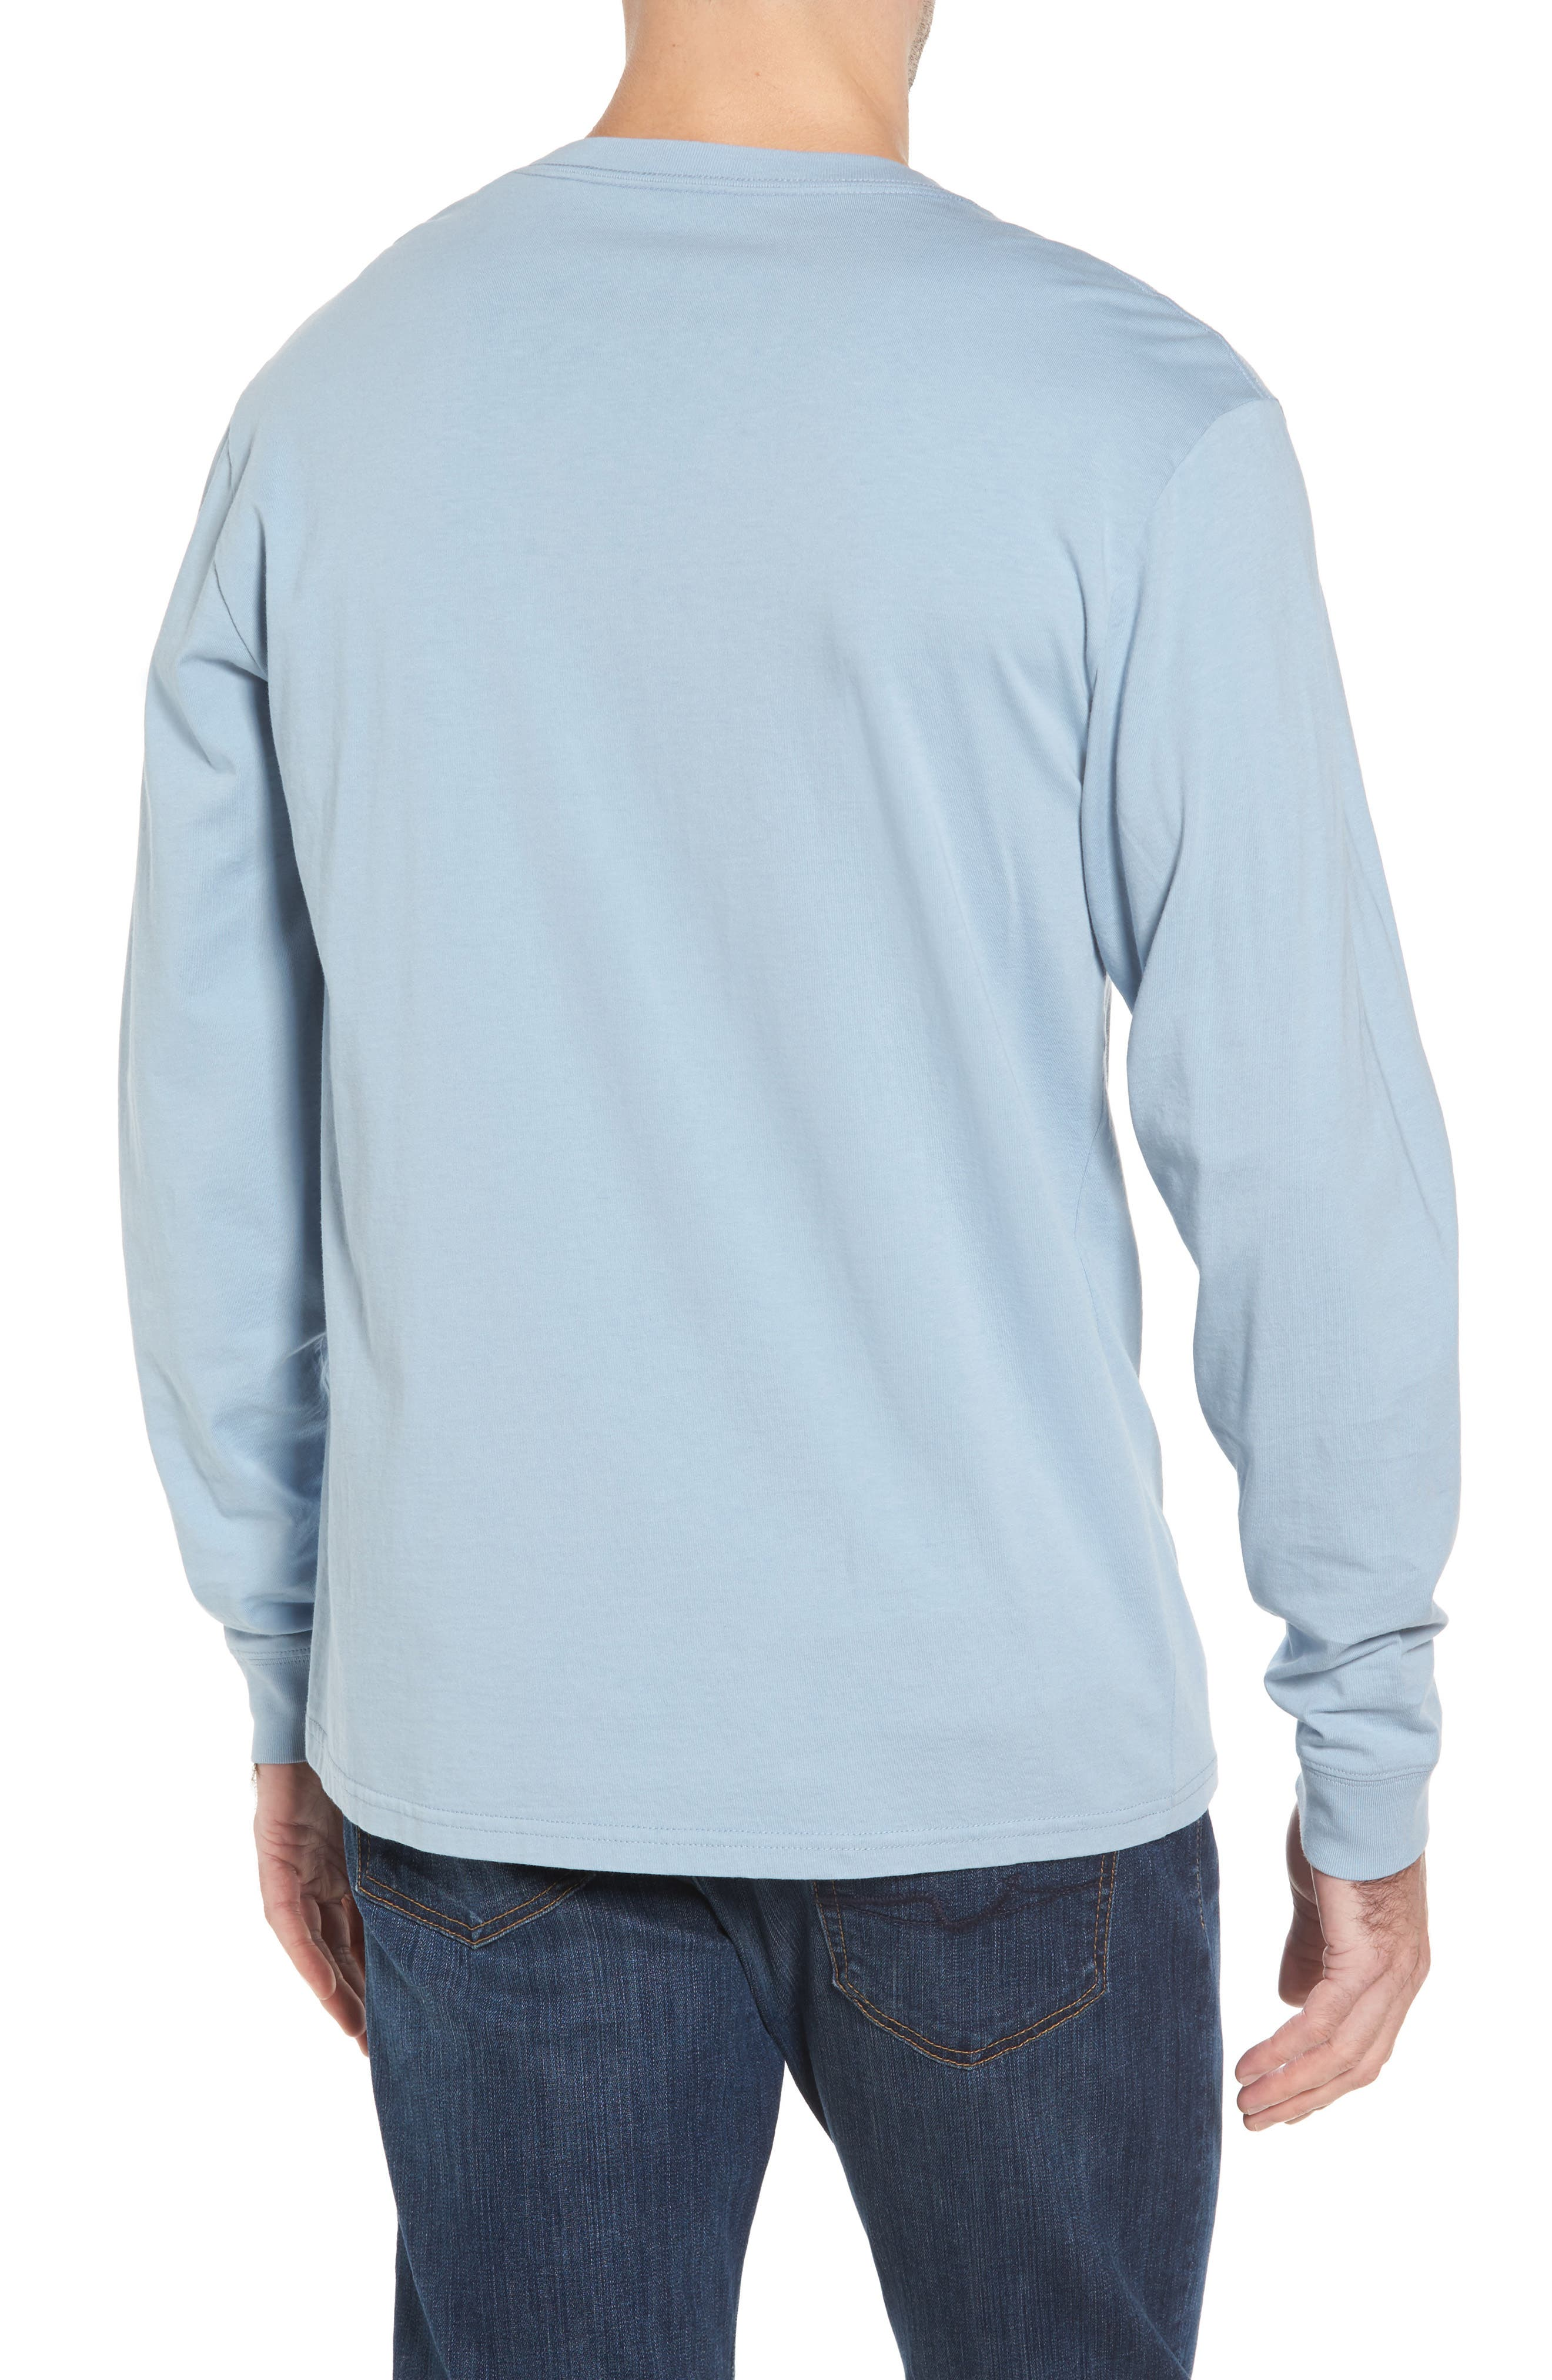 Alternate Image 2  - Southern Tide Embroidered Long Sleeve T-Shirt